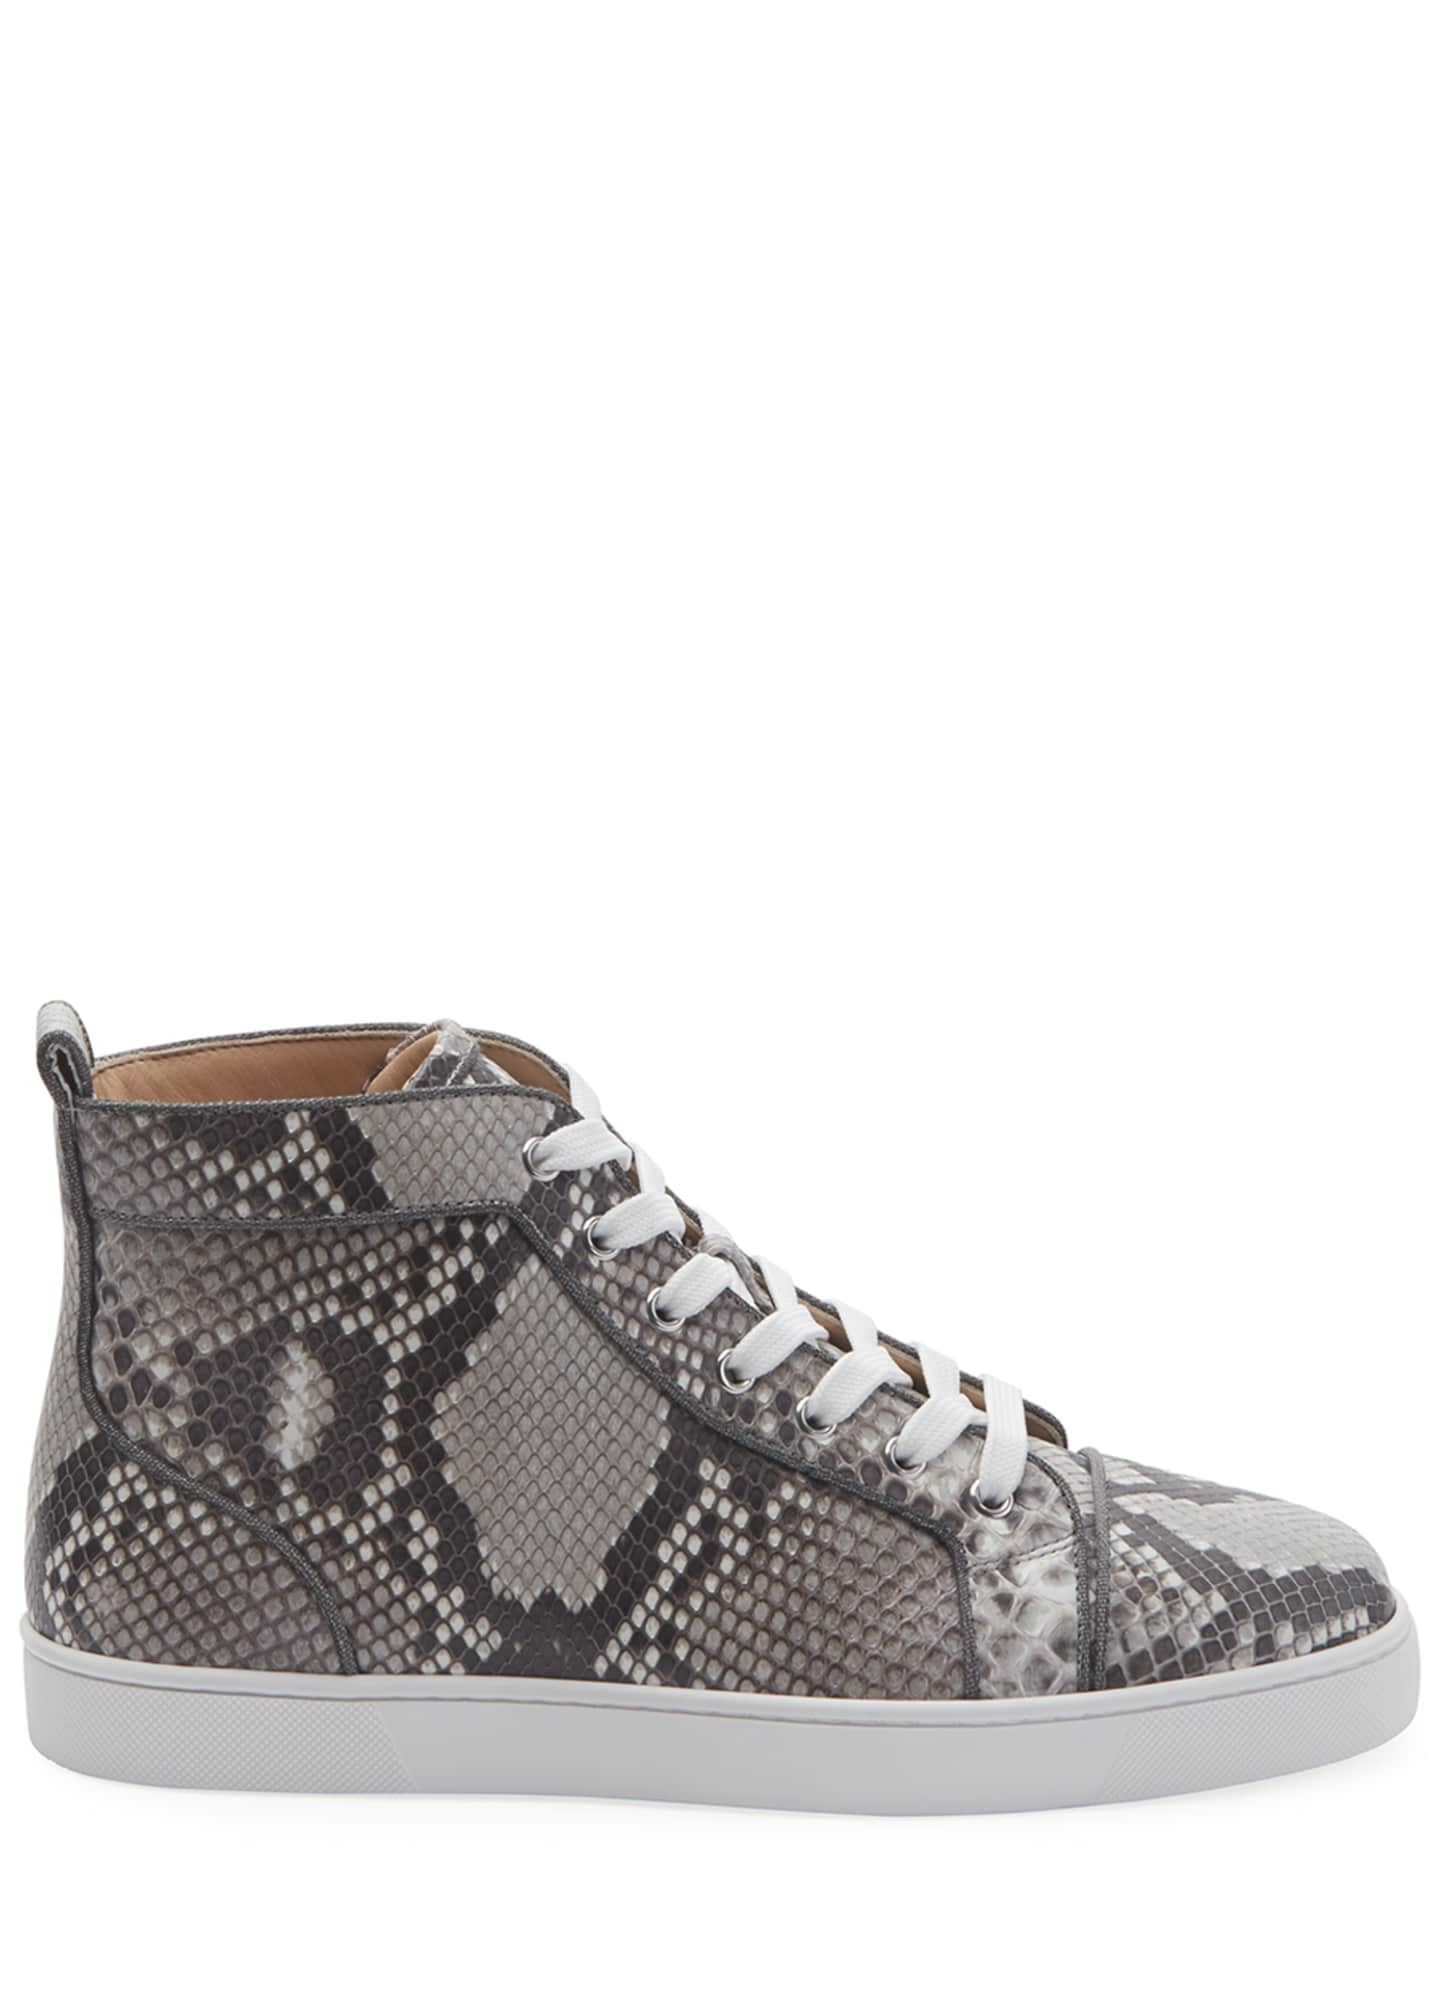 Image 2 of 4: Men's Louis Orlato Python Glow-in-the-Dark Sneakers